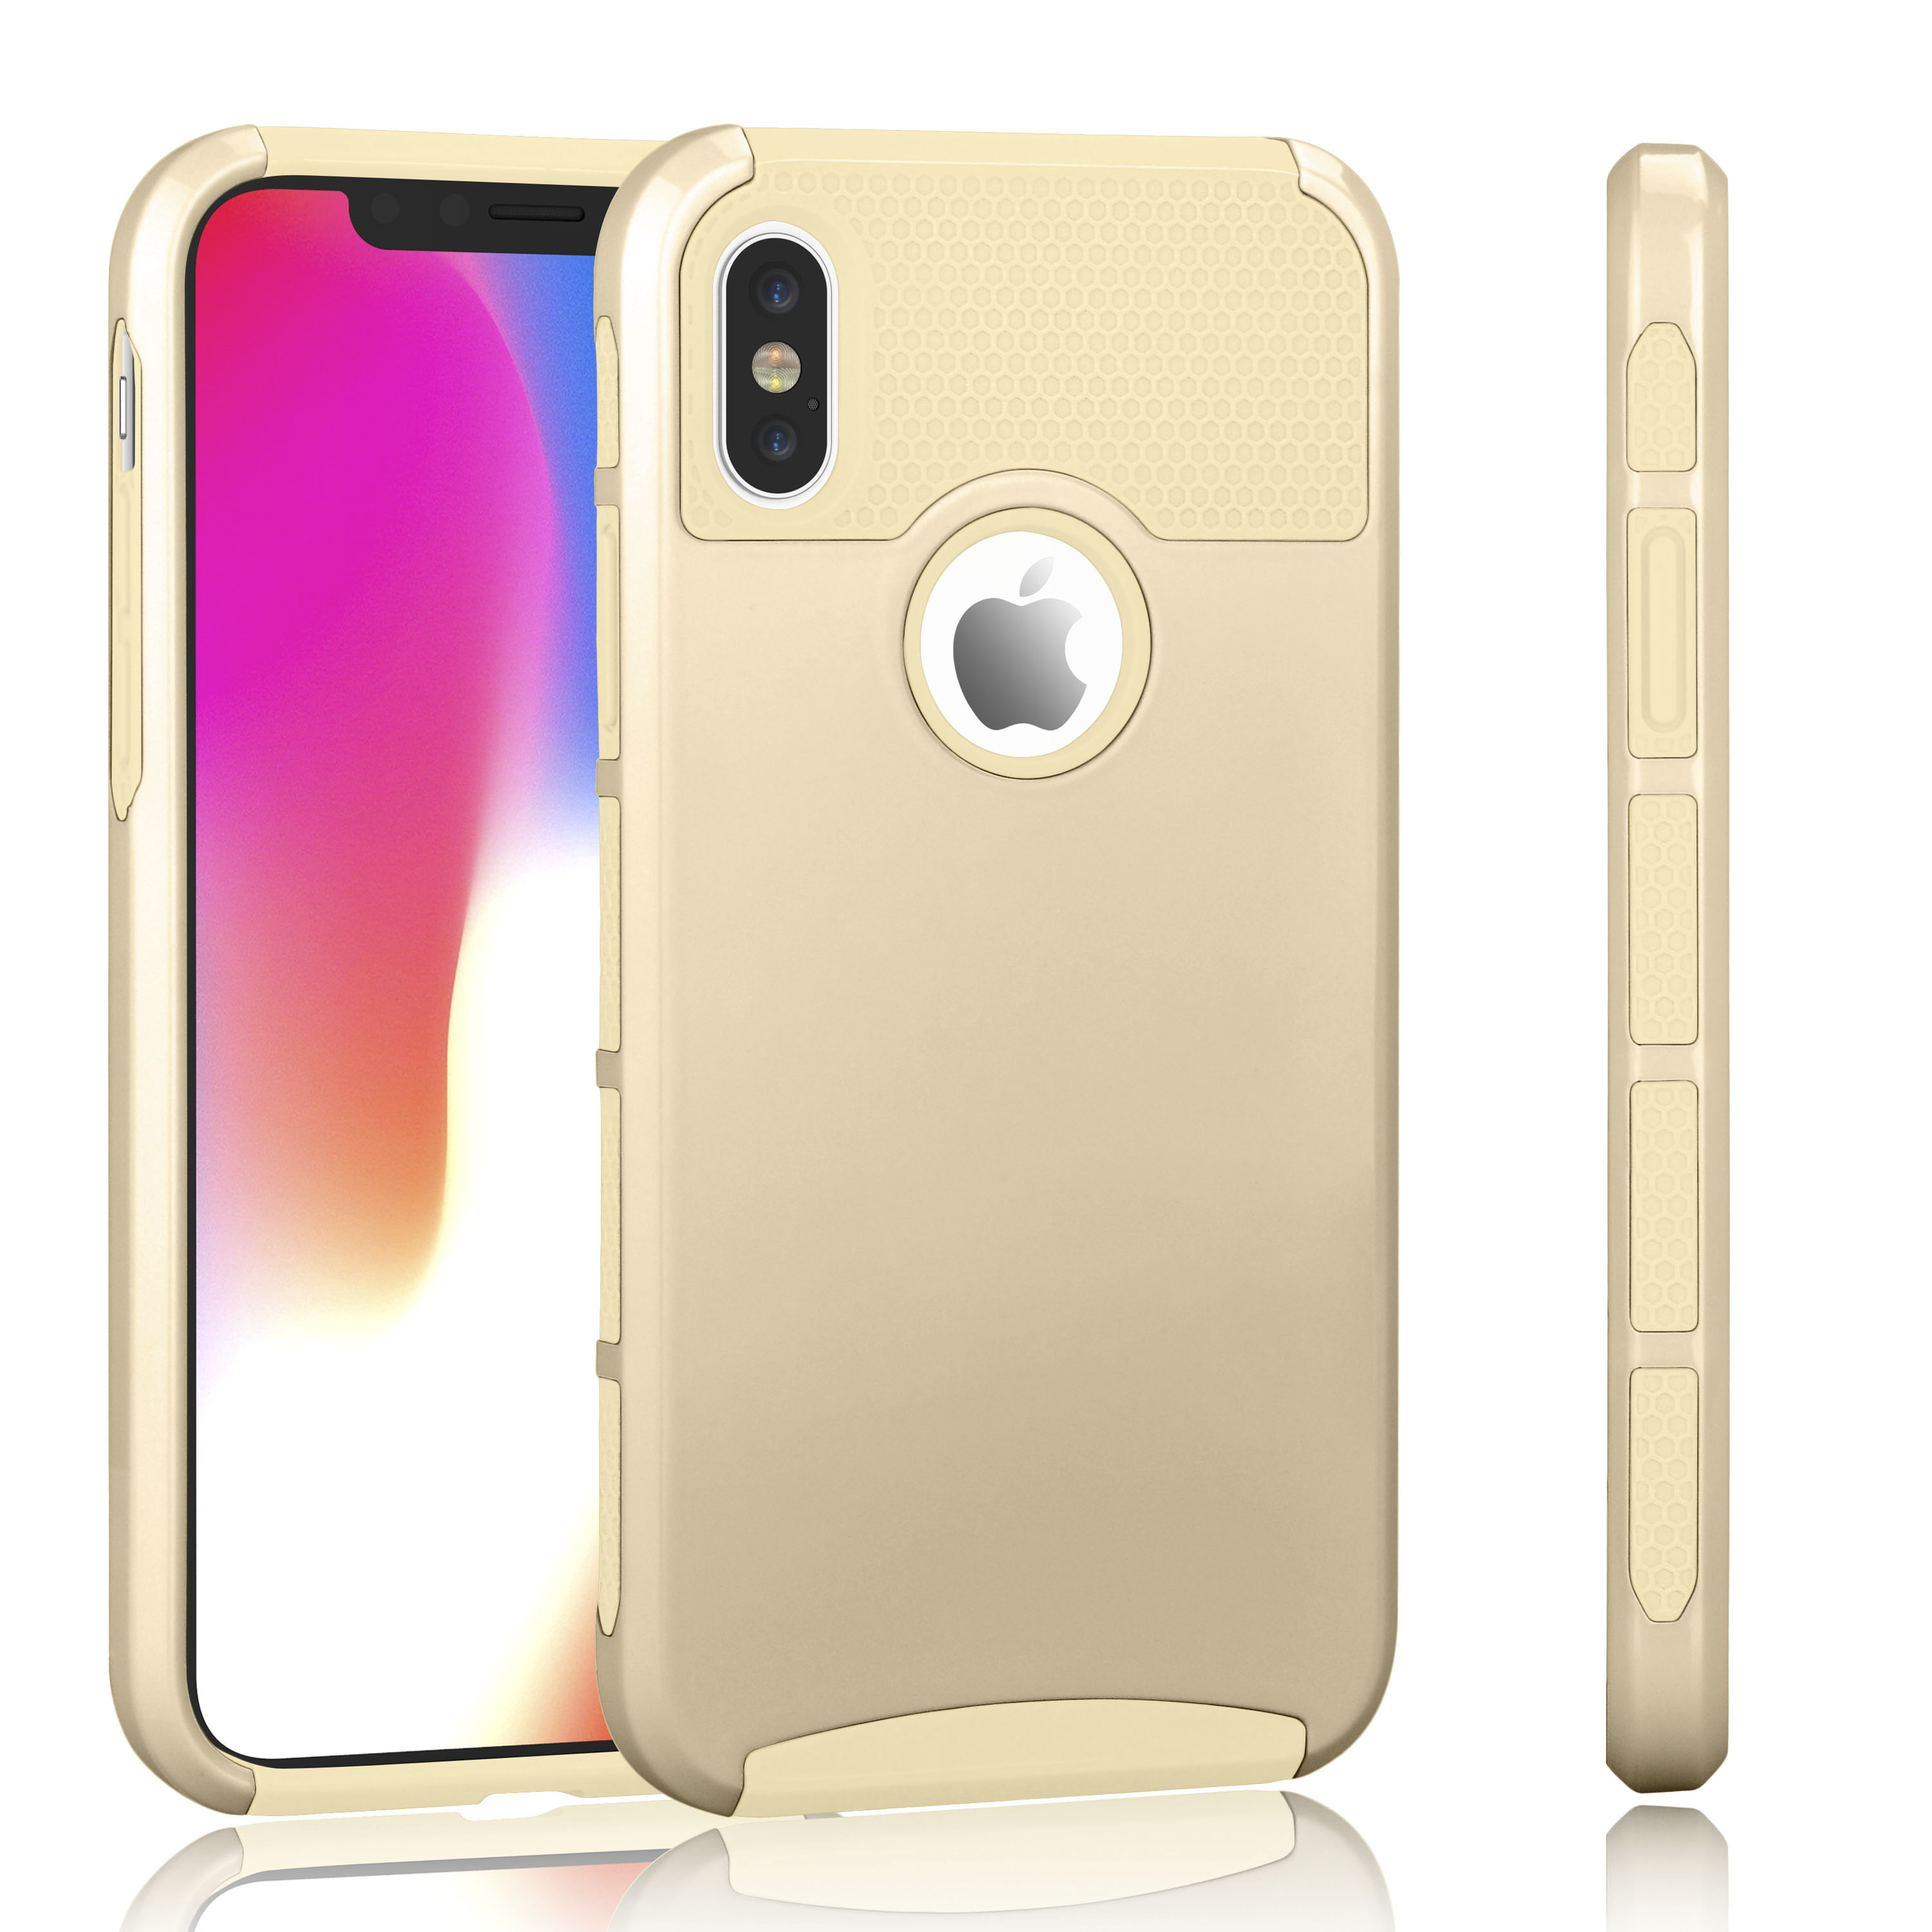 iPhone X Case, iPhone X Sturdy Case For Girls, Tekcoo [TDuke] iPhone 10 Protective Cases [Champagne Gold] Shock Absorbing Hard Defender Glossy Finish Cover [Scratch Proof] Plastic Shell & TPU Rubber